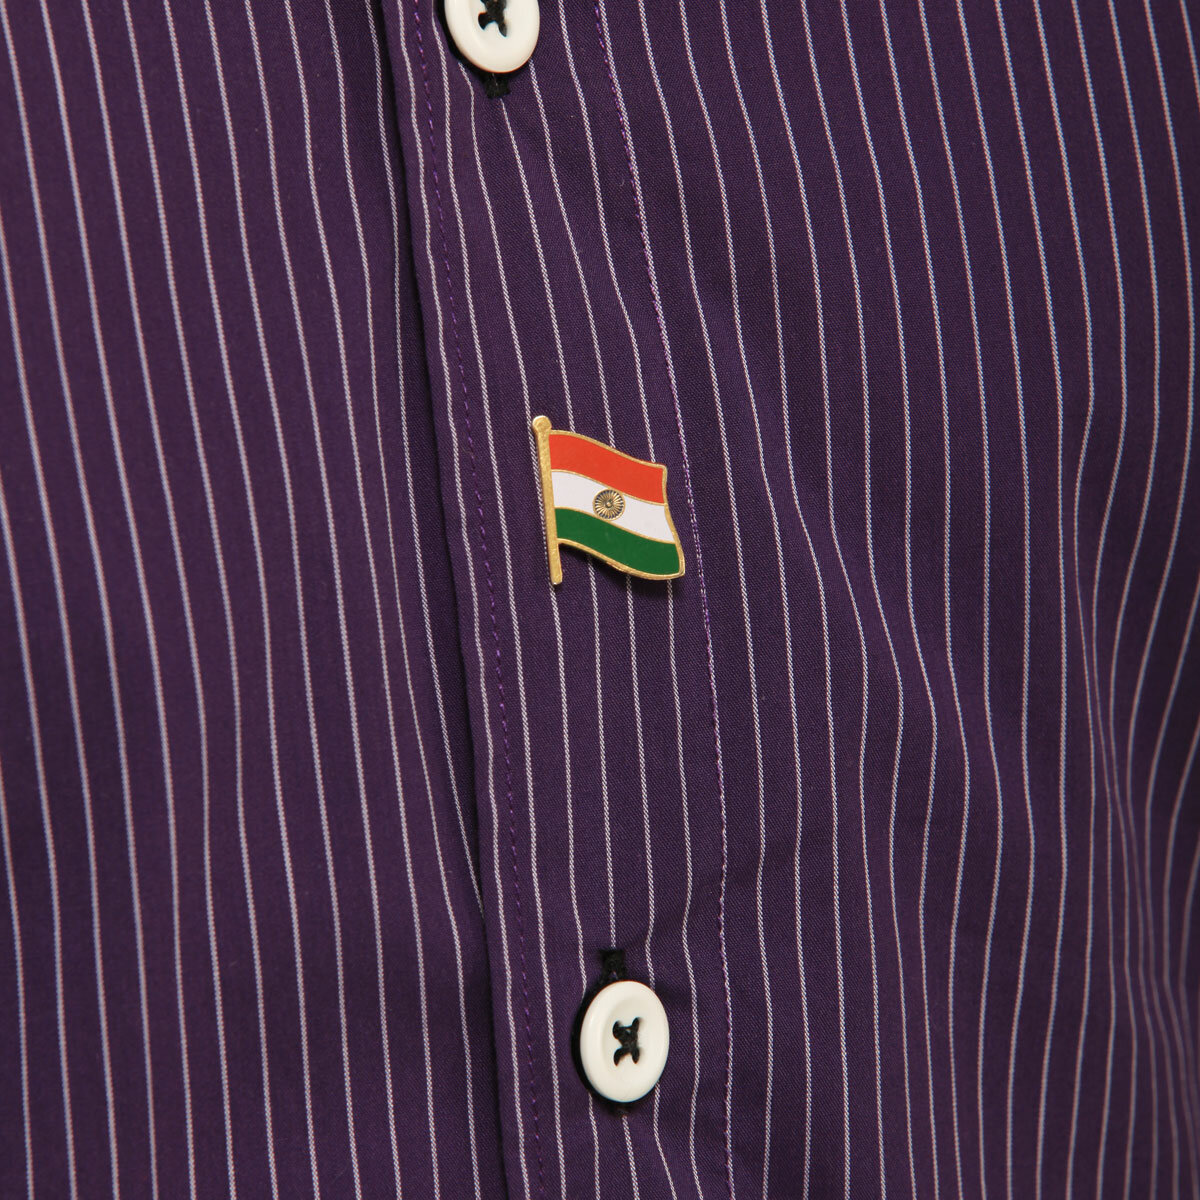 Indian National Flag Gold Plated Brass Small Lapel Pin Worn On A Shirt